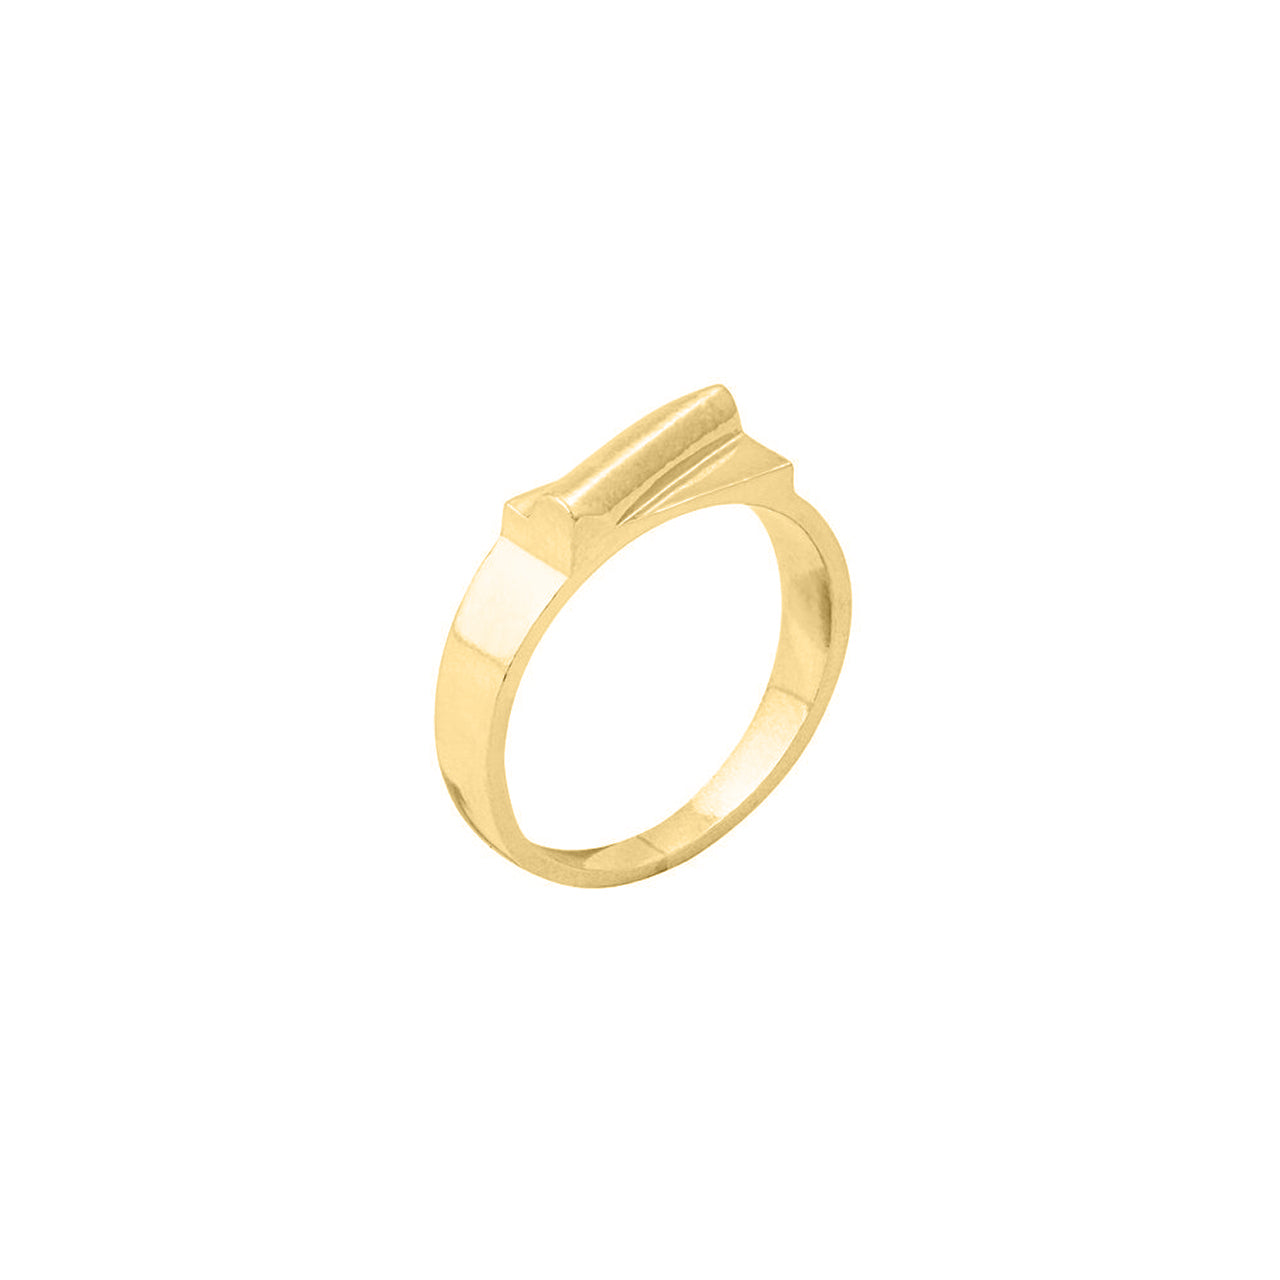 arte gold pei ring